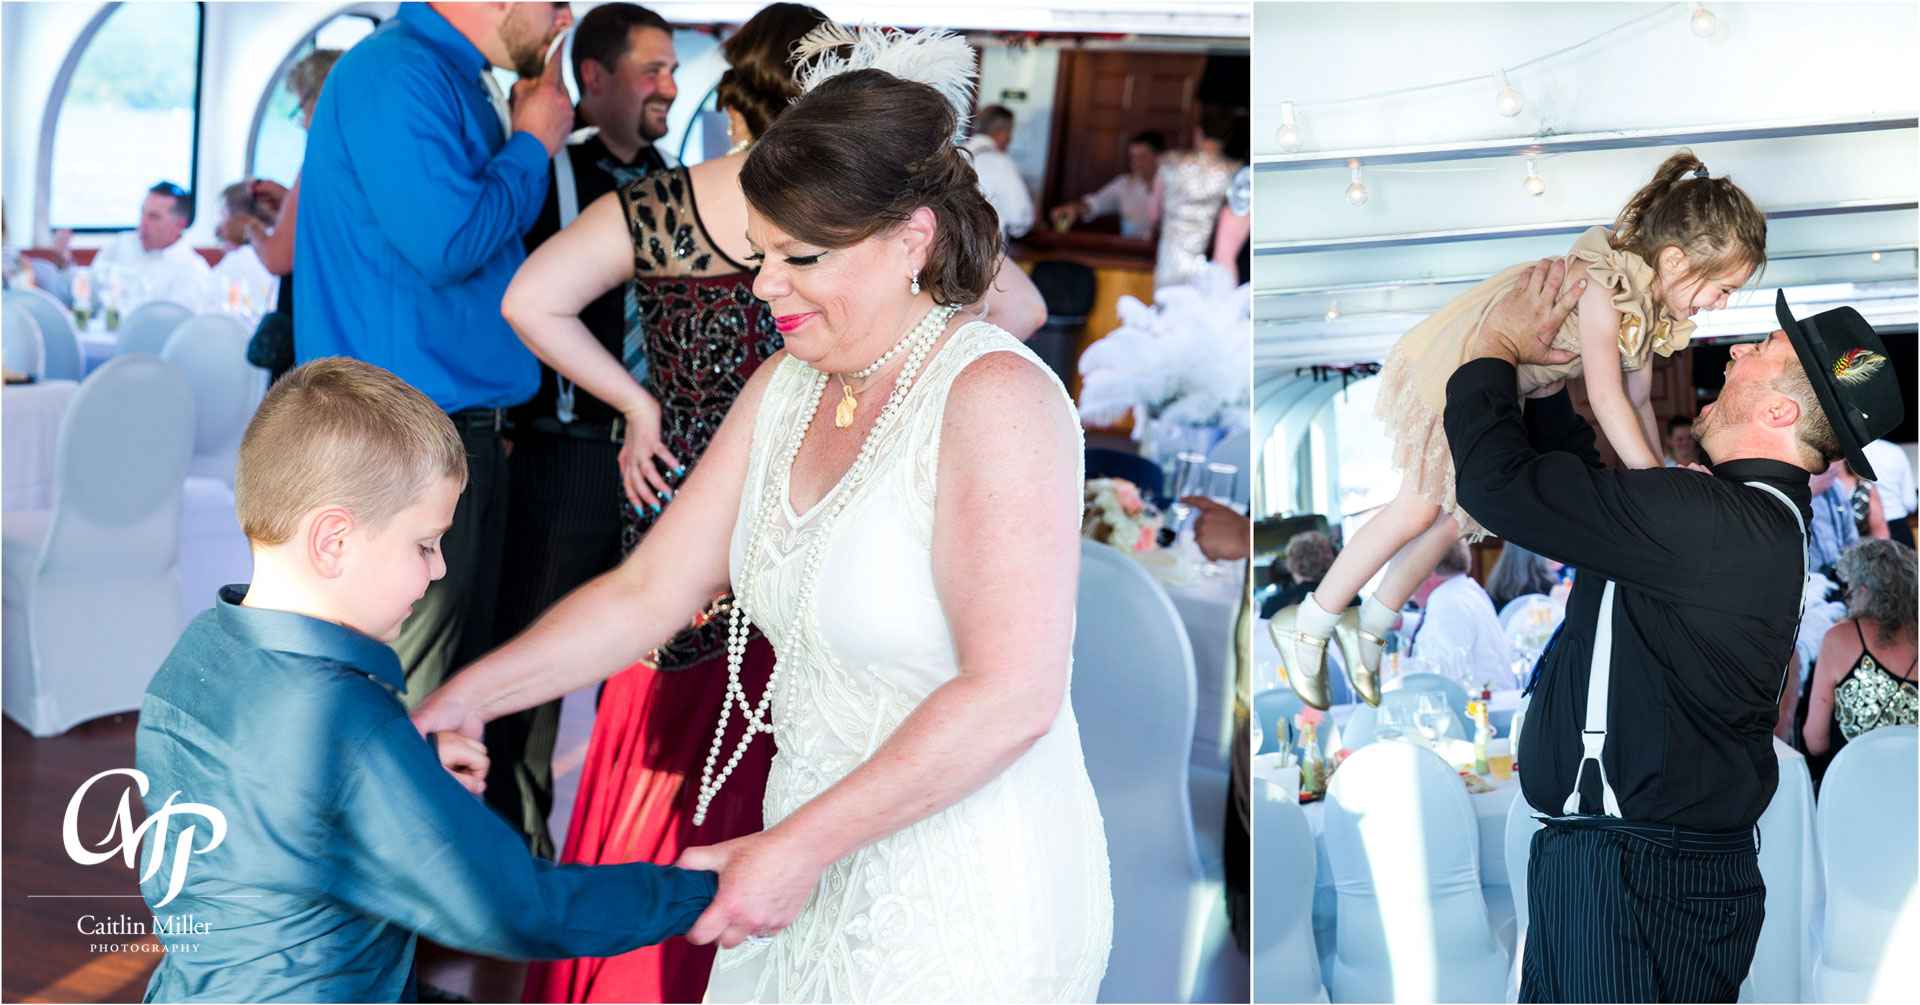 bombard-30.jpg from Jan and Robert's vow renewal on shoreline Cruise's Adirondac Boat on Lake George, NY by Saratoga Wedding Photographer Caitlin Miller Photography. Lake George Wedding Photographer. Stamford wedding photographer. Albany wedding photographer. Shoreline Cruises Wedding Photographer. Saratoga Wedding Photographer